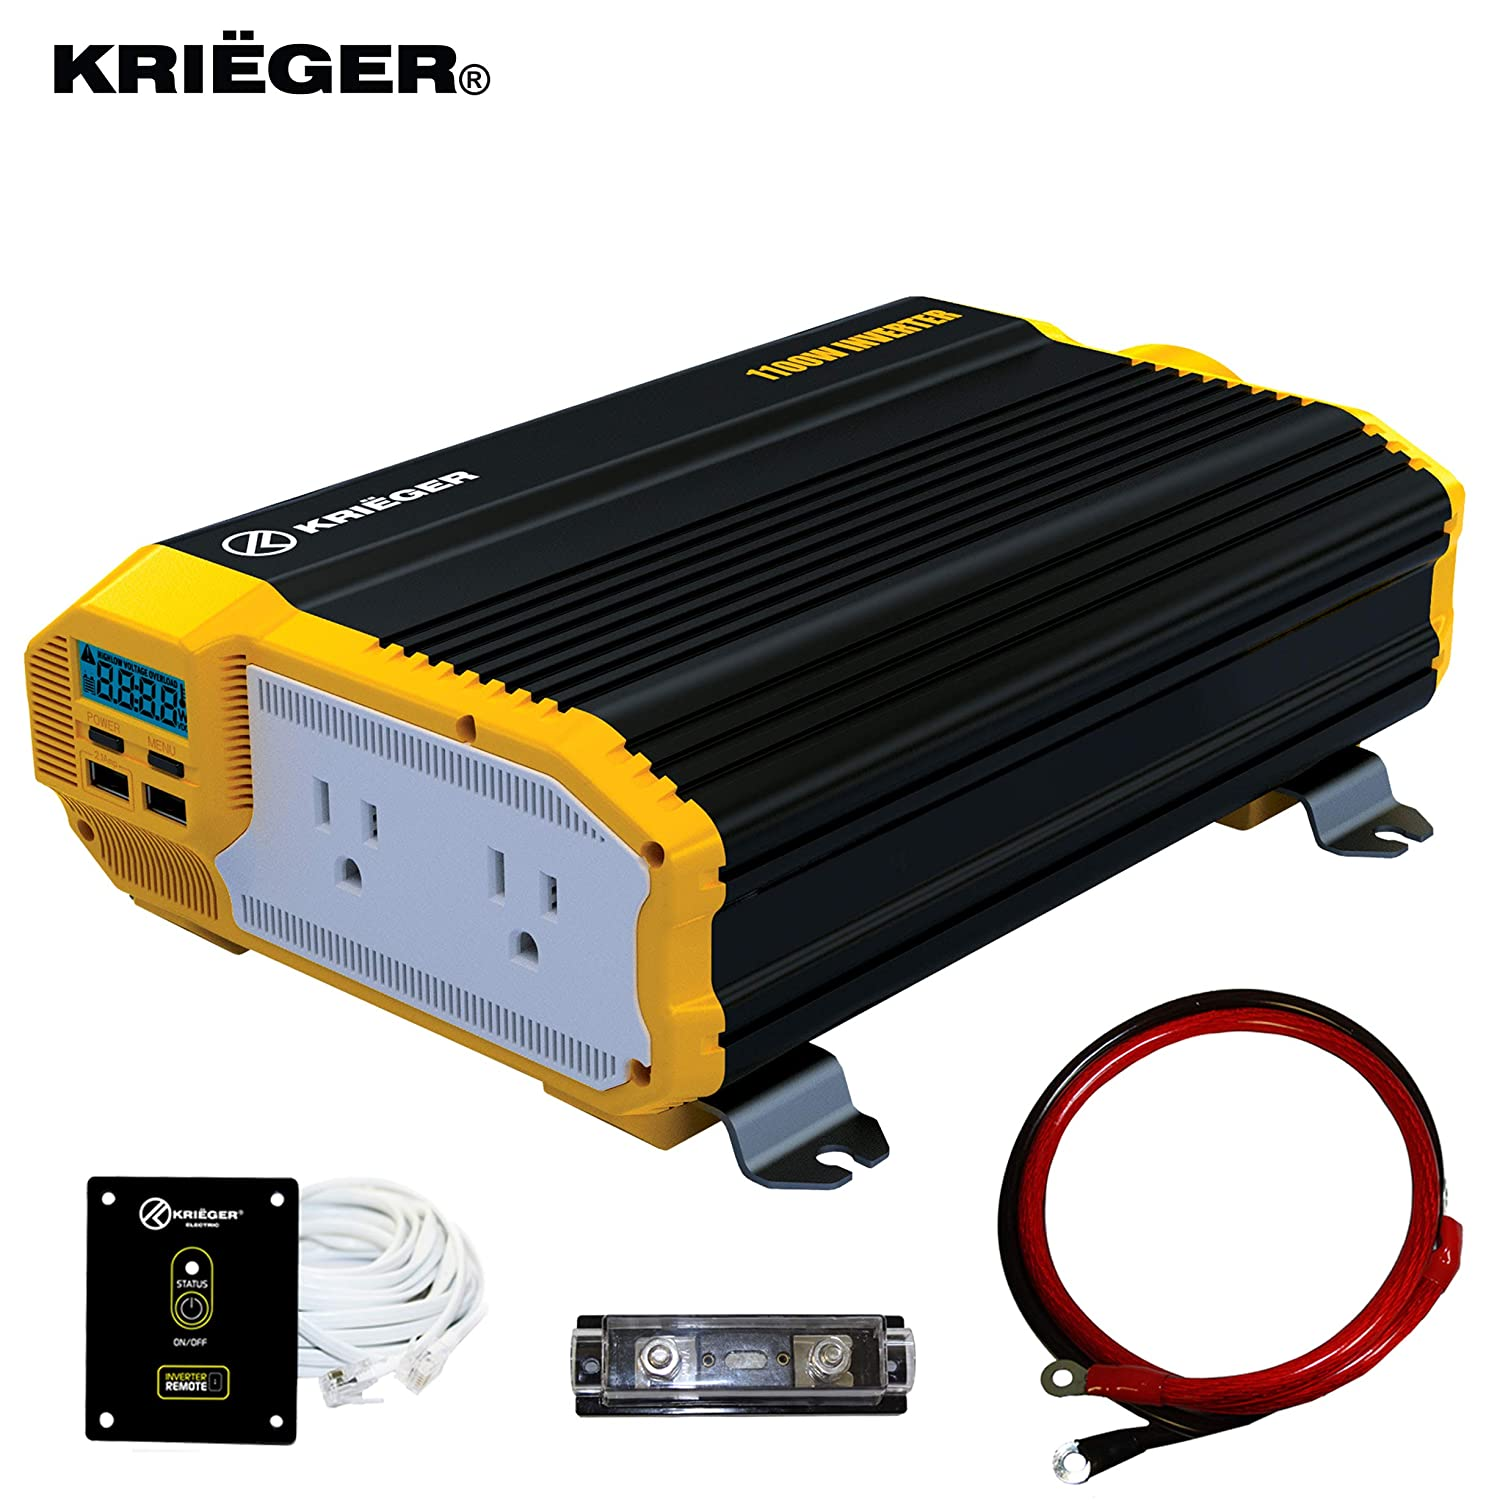 KRIËGER 1100 Watt 12V DC Power Inverter}